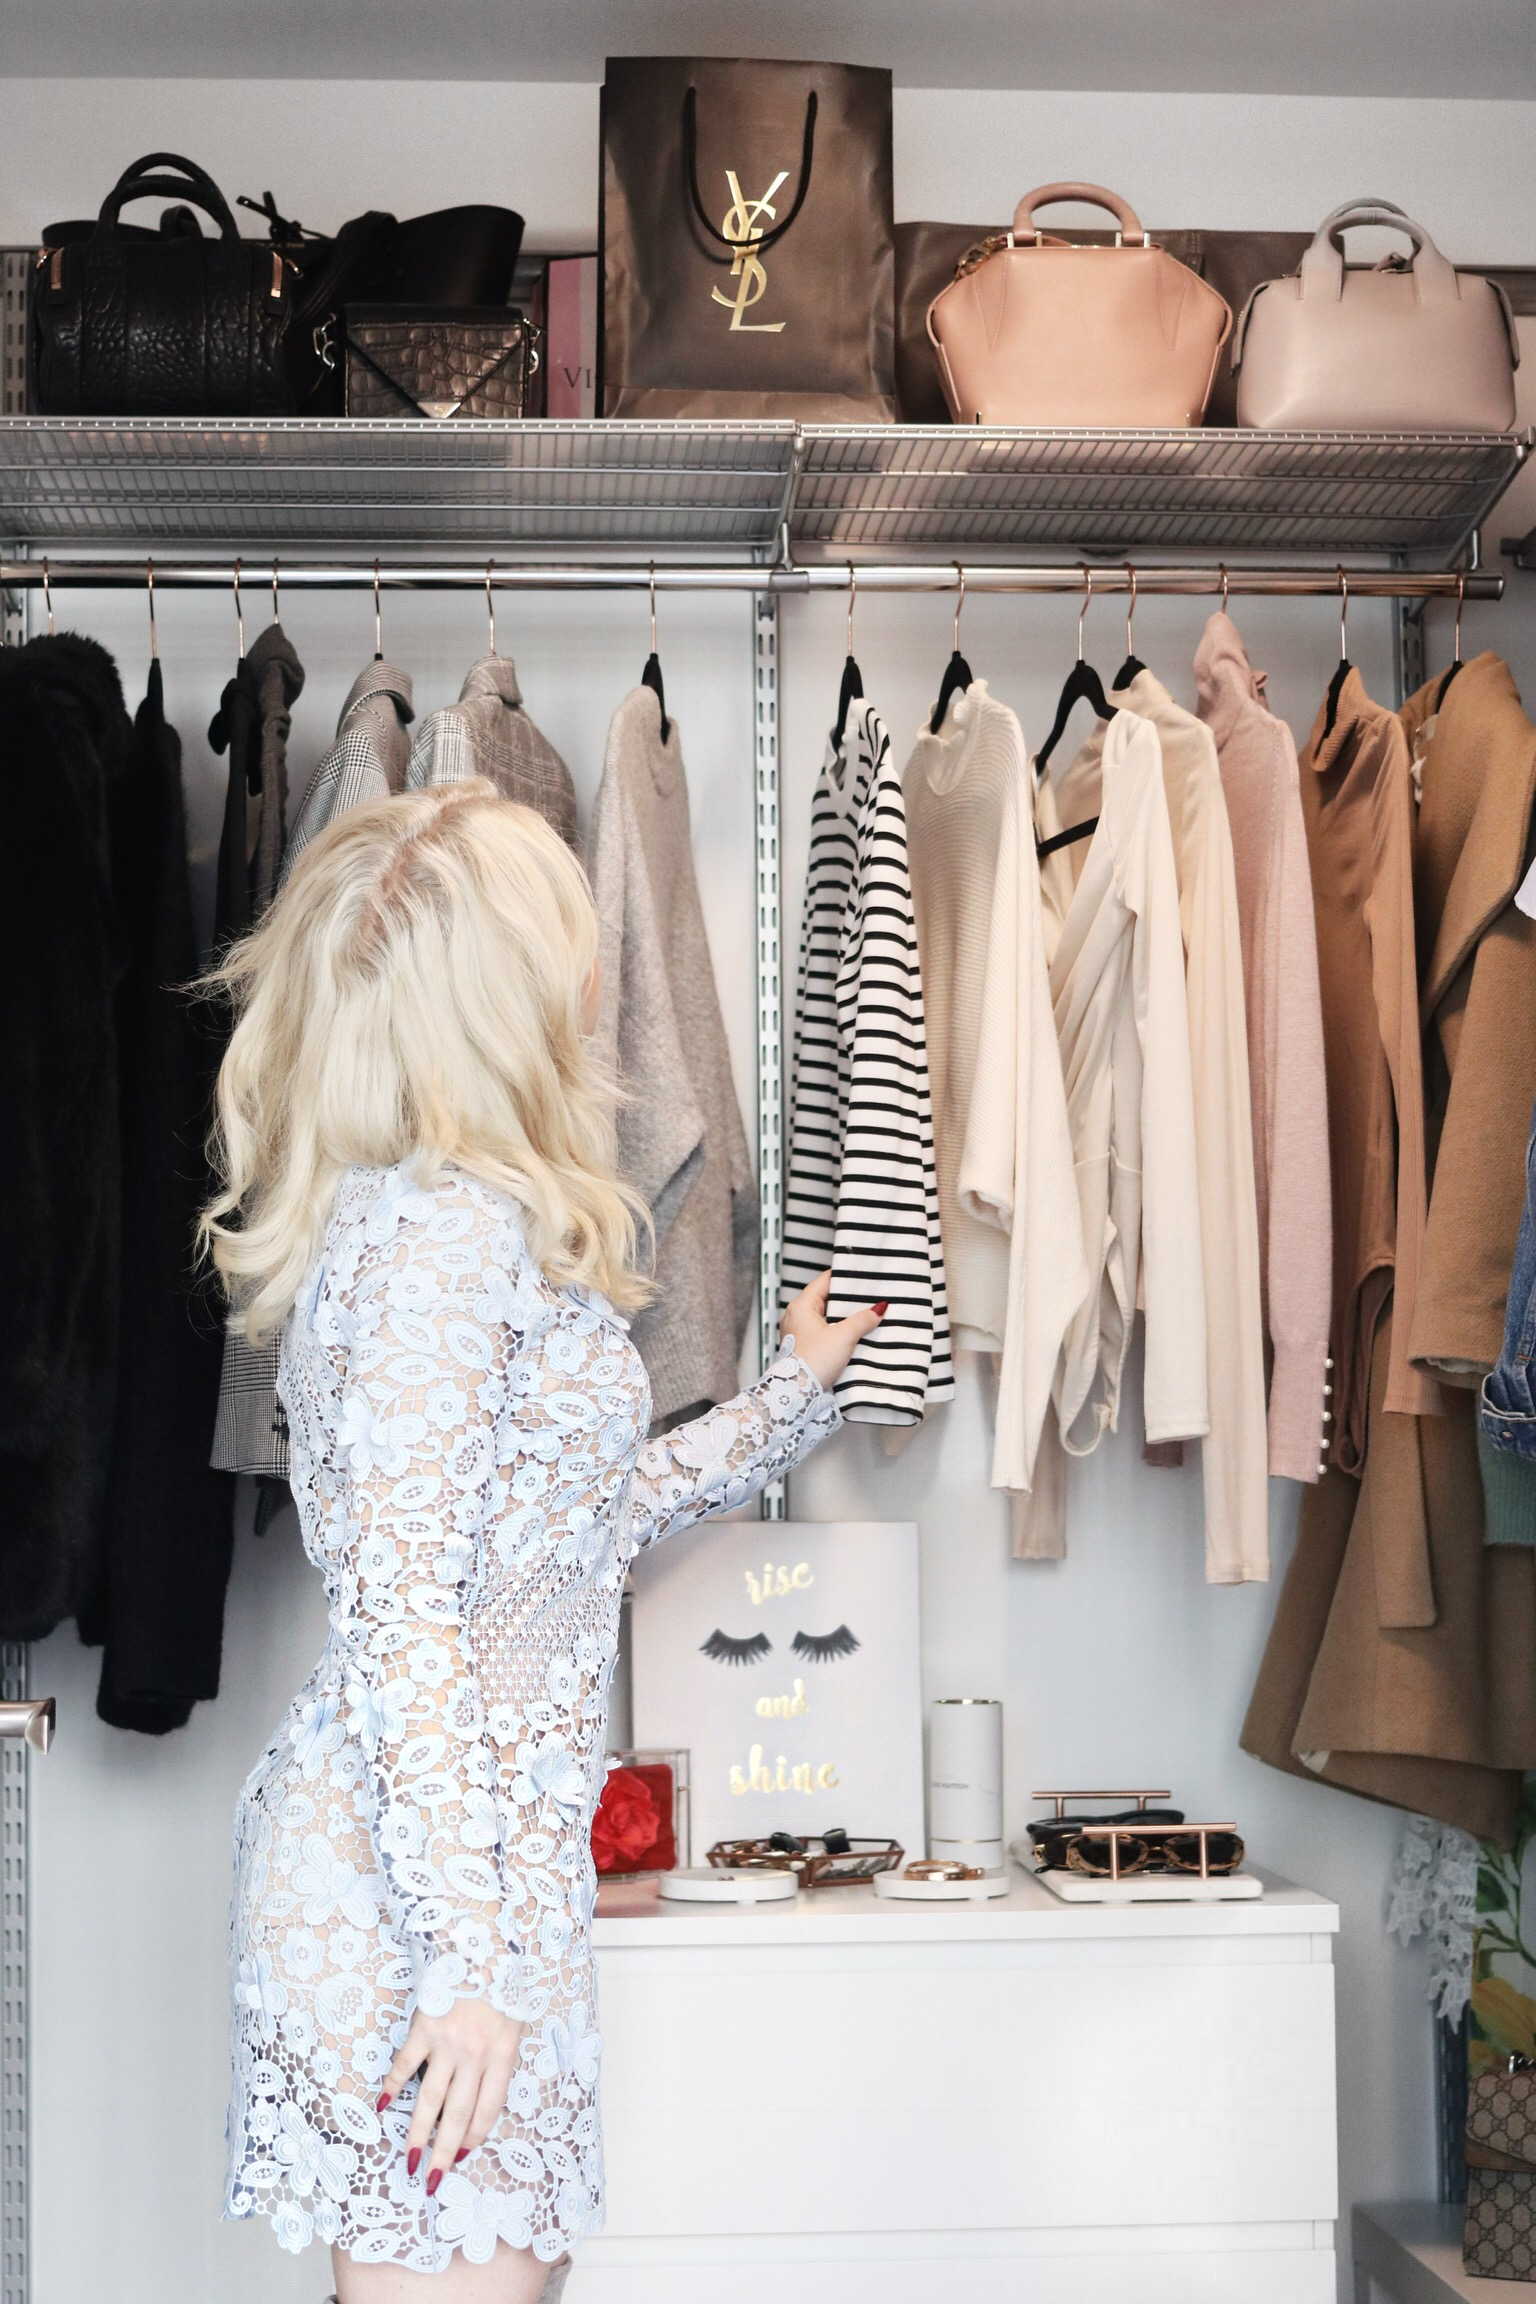 How To Create A Pinterest Inspired Walk-In Closet